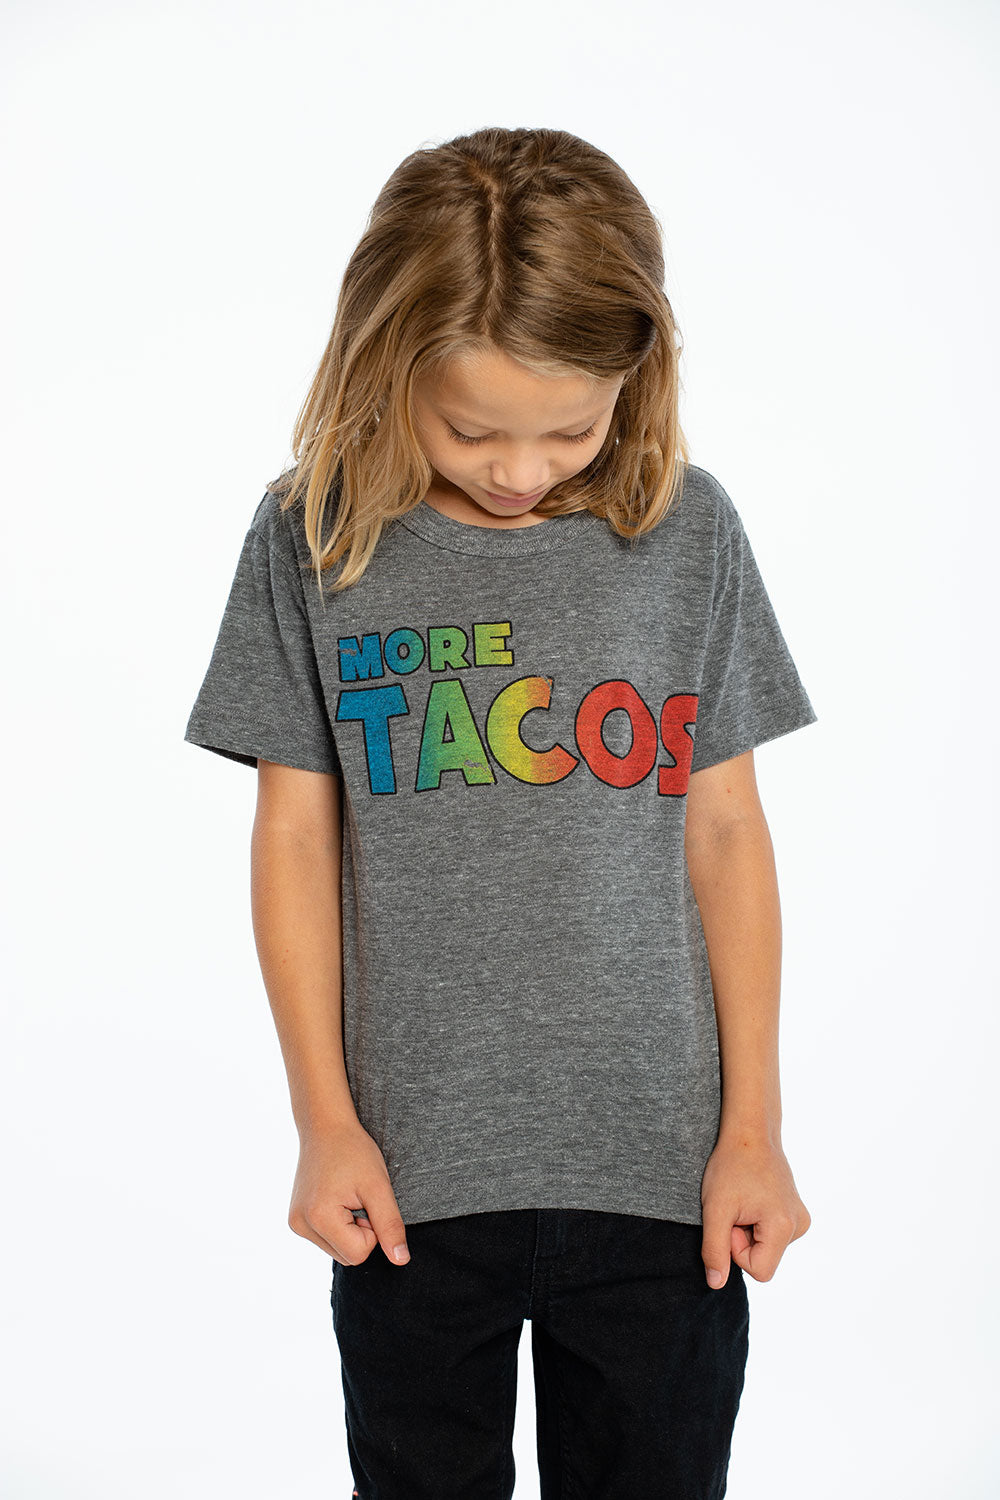 Tacos, BOYS, chaserbrand.com,chaser clothing,chaser apparel,chaser los angeles